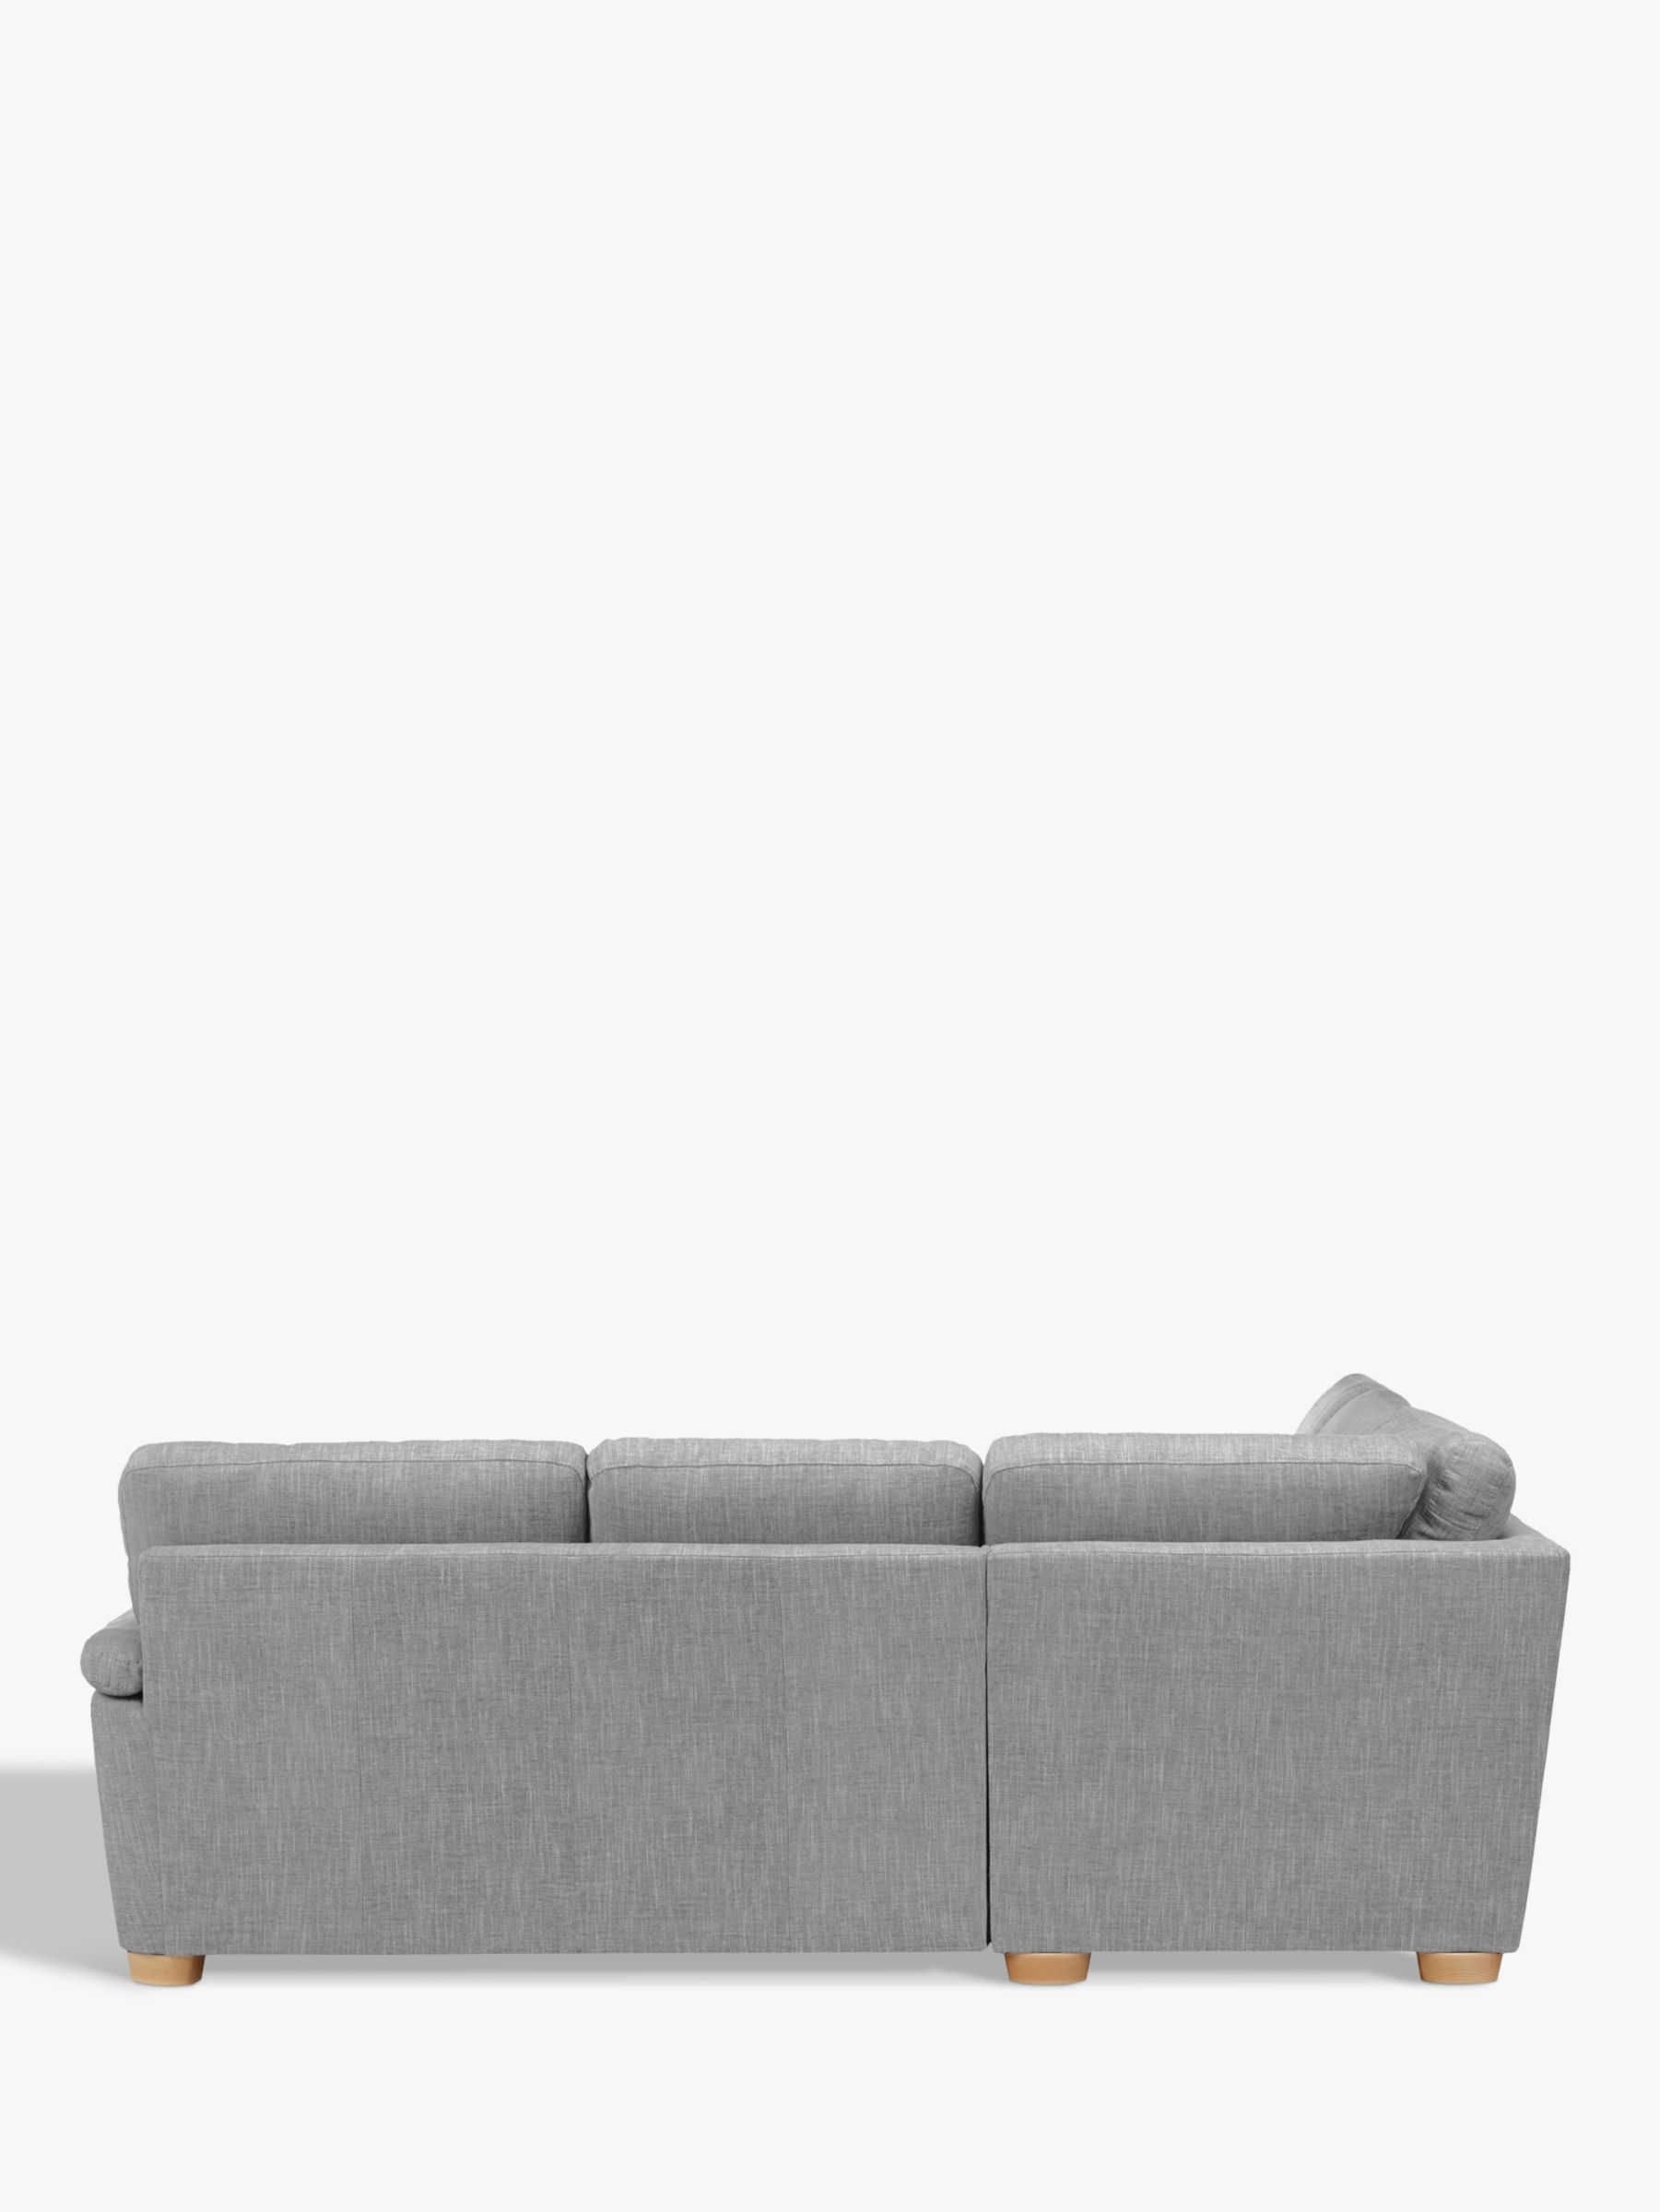 camden sofa john lewis mould on back of and partners corner at